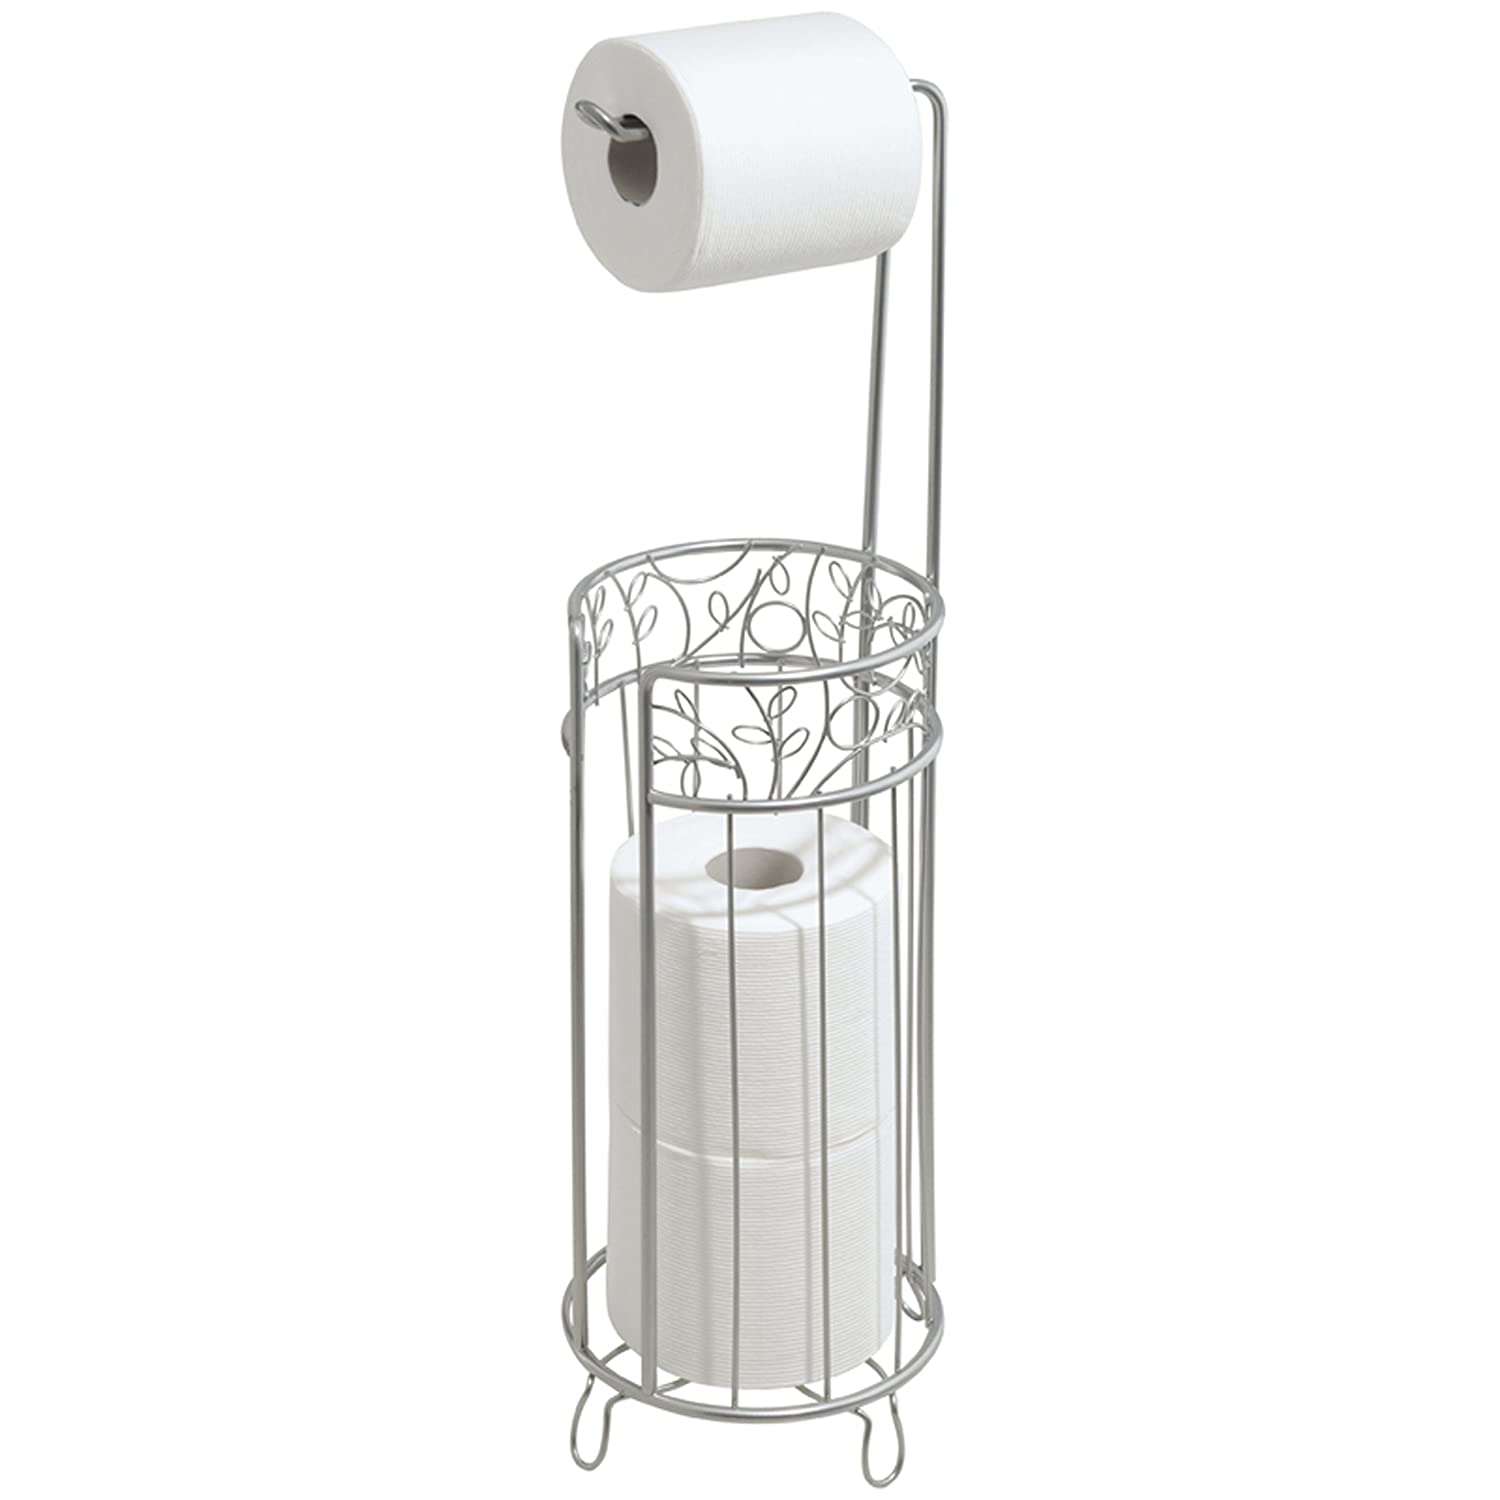 Toilet Paper Roll Holder Stand